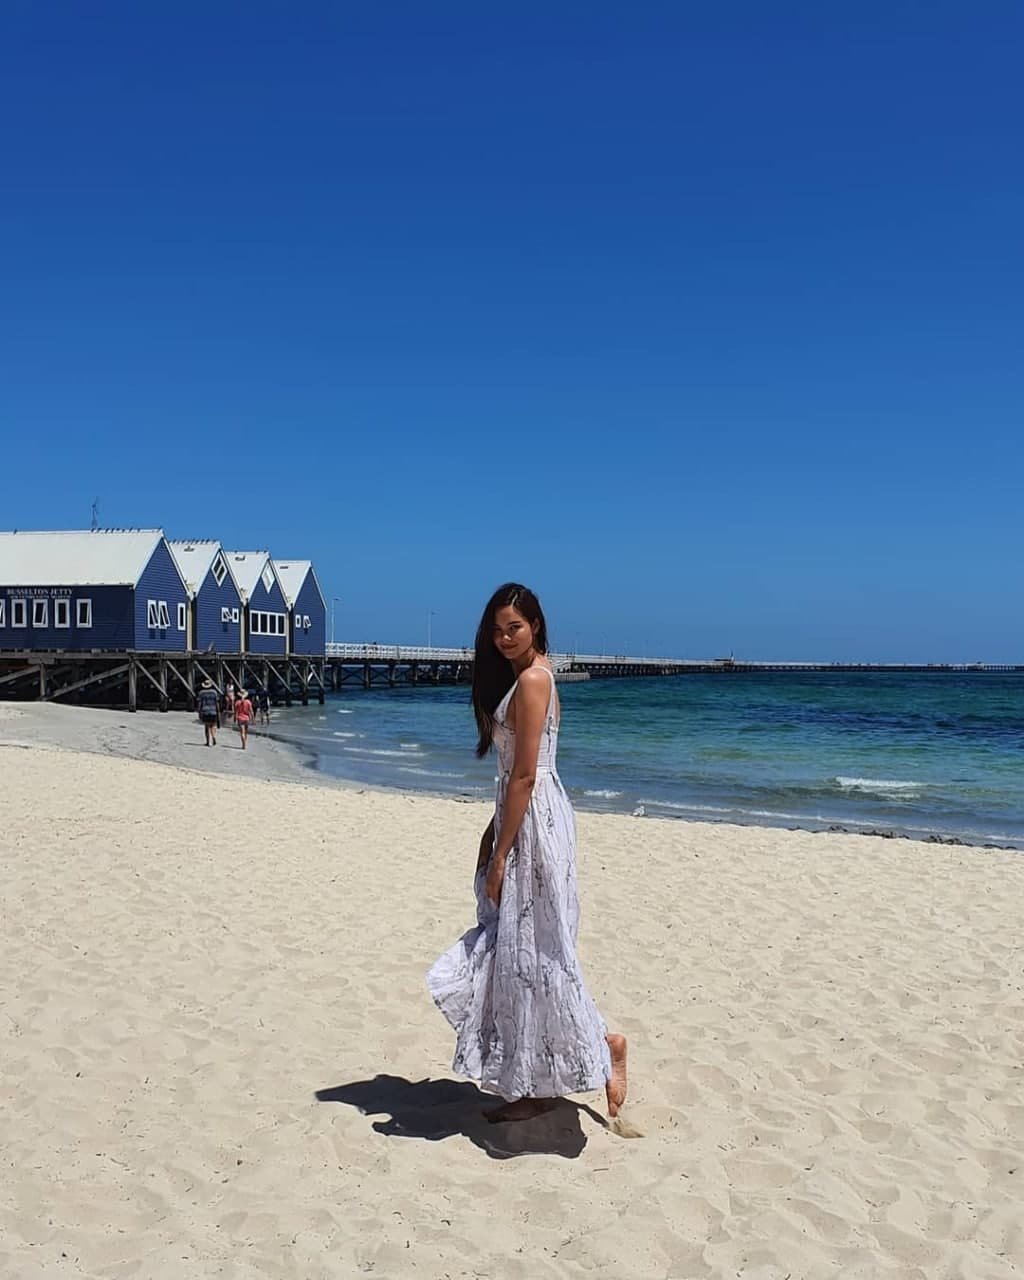 Catriona Gray taking a stroll on the beach